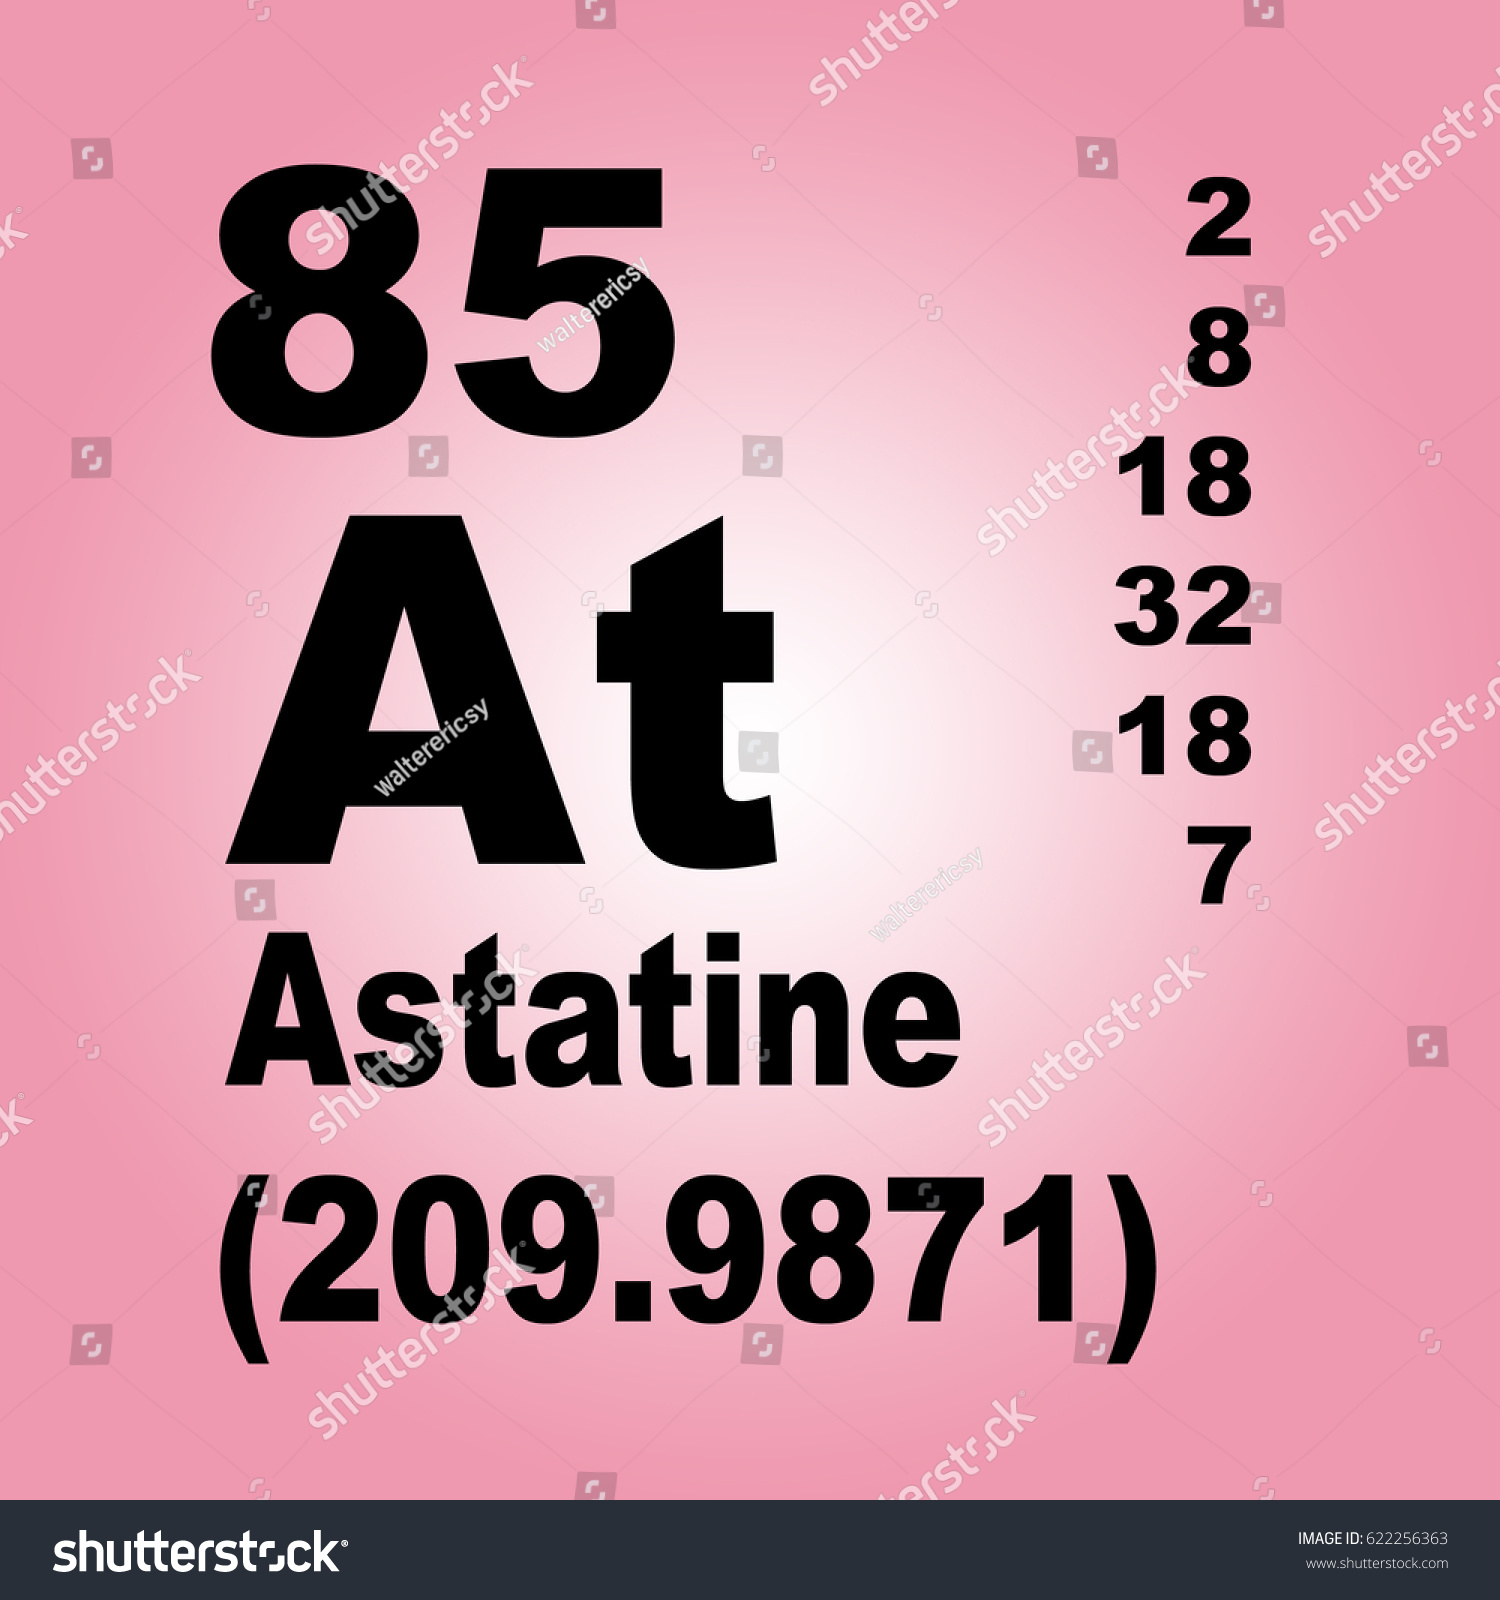 Astatine periodic table elements stock illustration 622256363 astatine periodic table of elements gamestrikefo Gallery